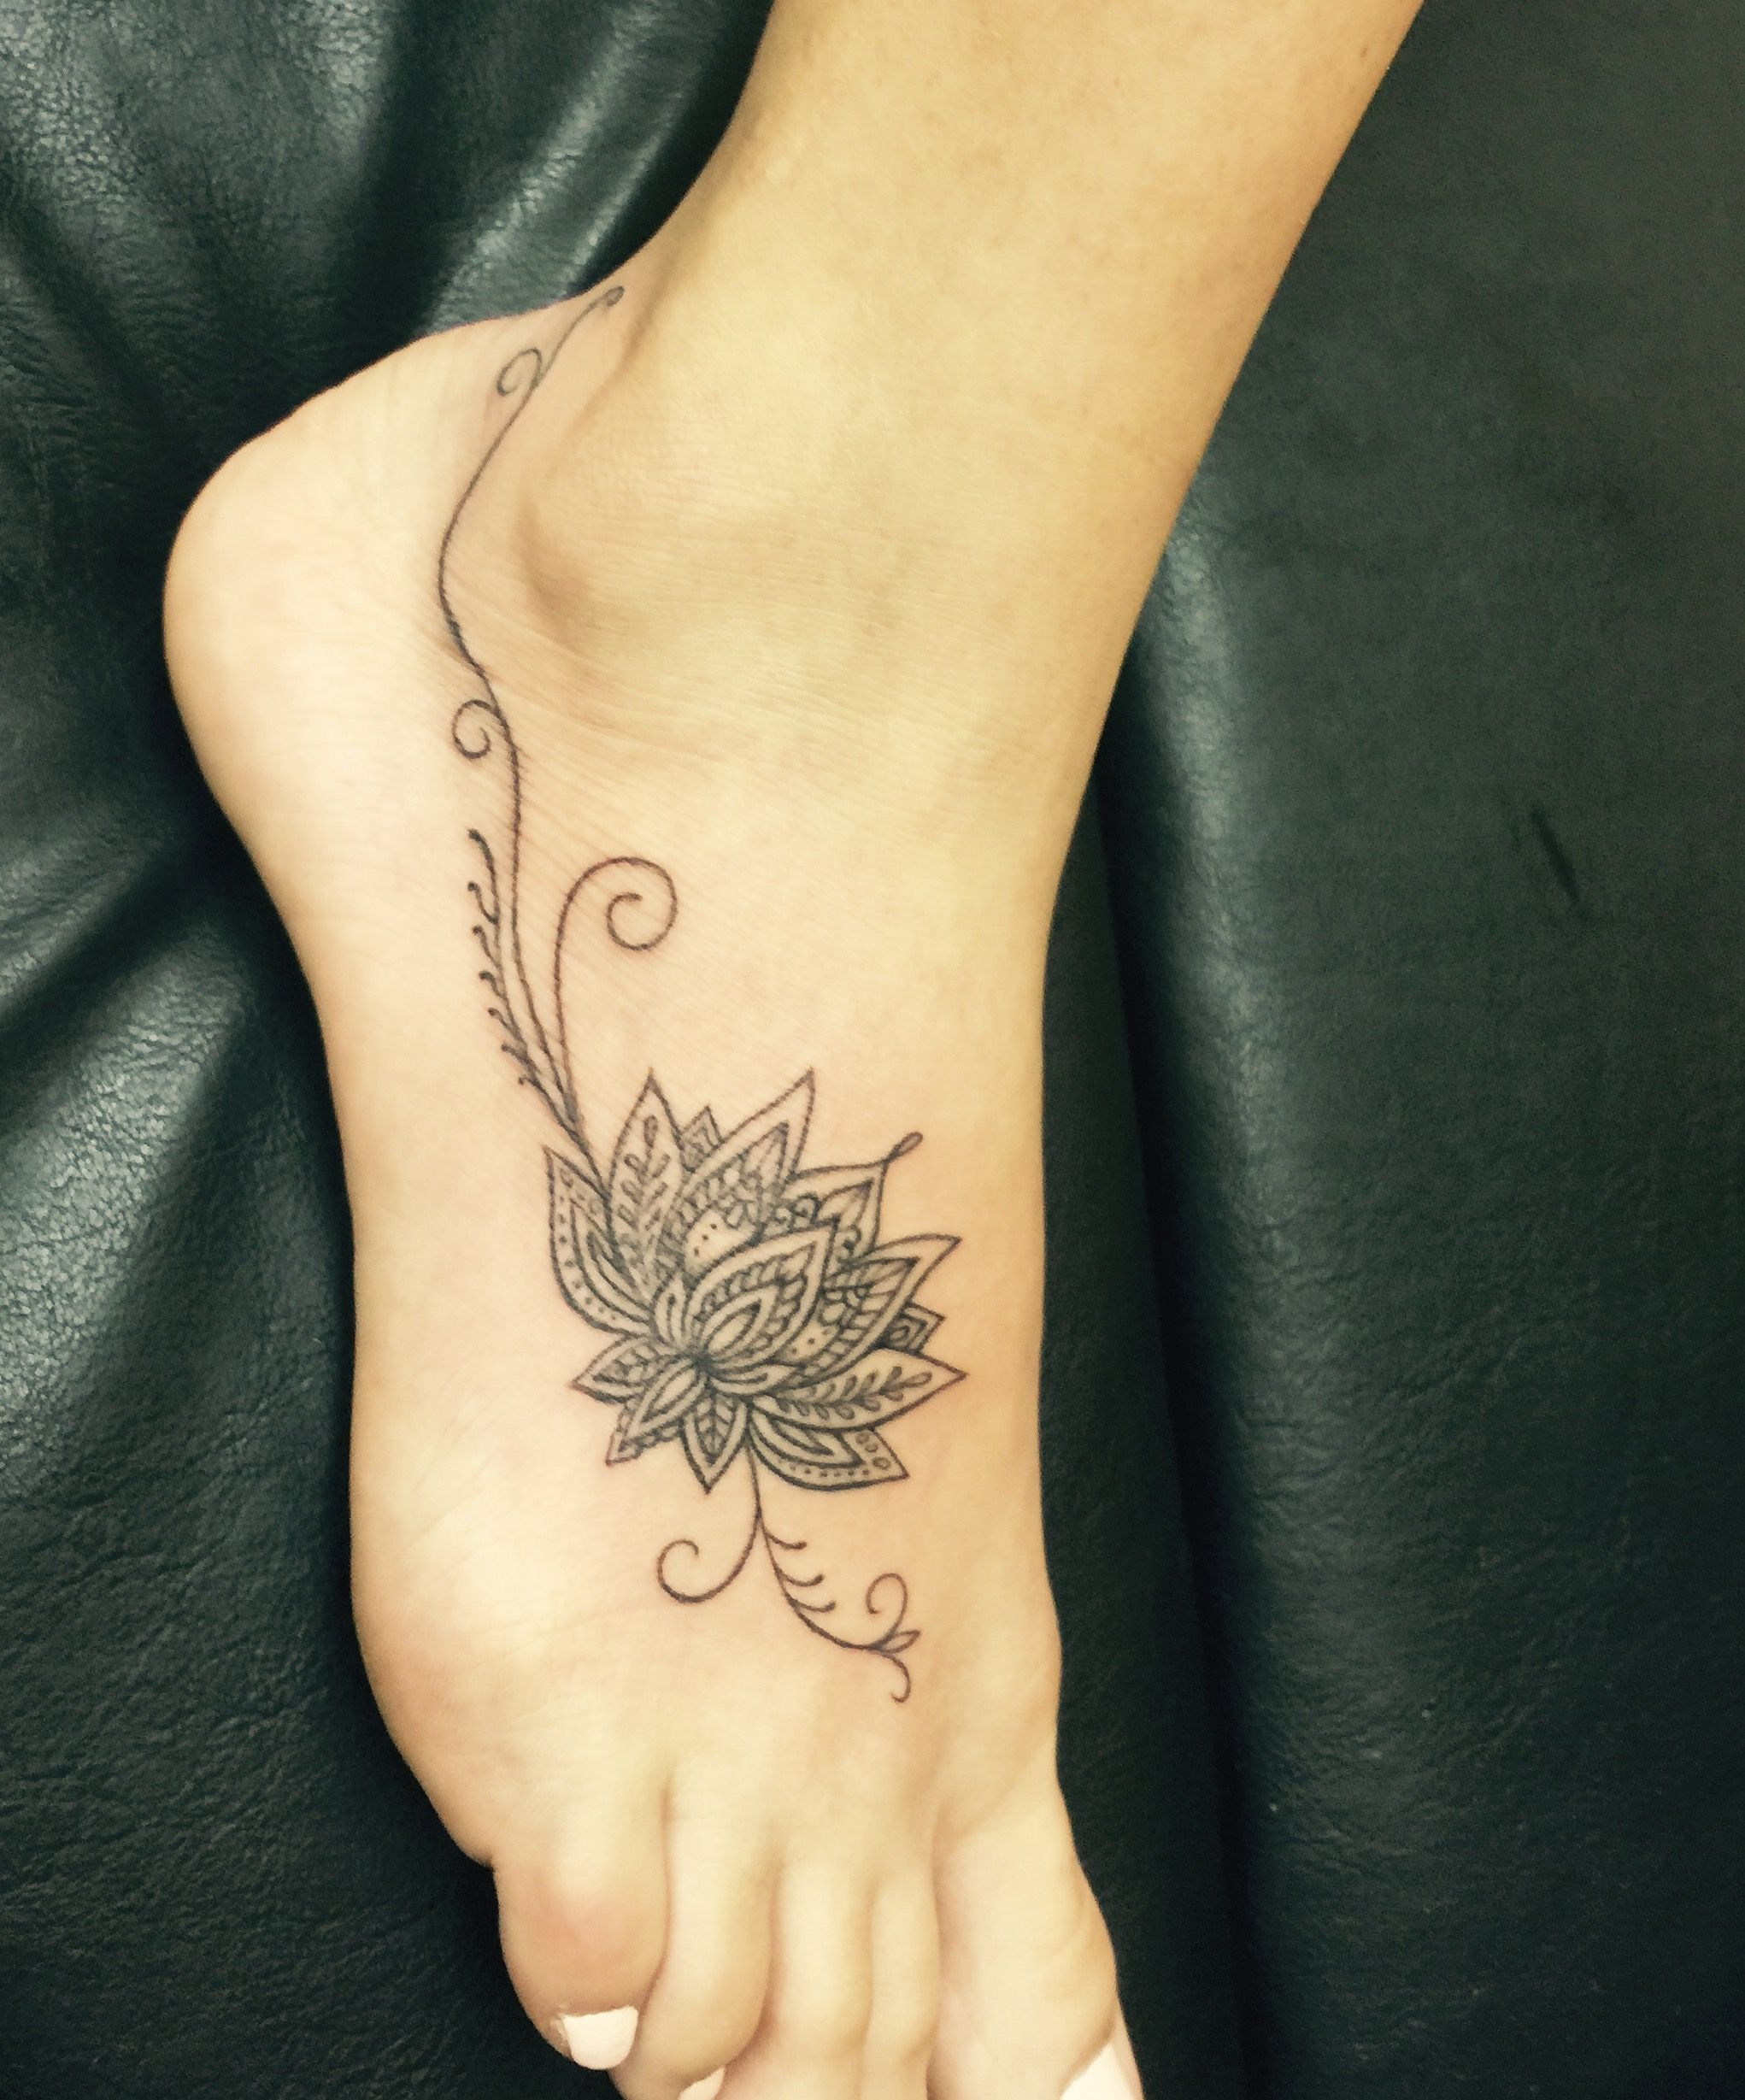 lotus flower foot tattoo tattoos pinterest flower foot tattoos lotus flower and lotus. Black Bedroom Furniture Sets. Home Design Ideas